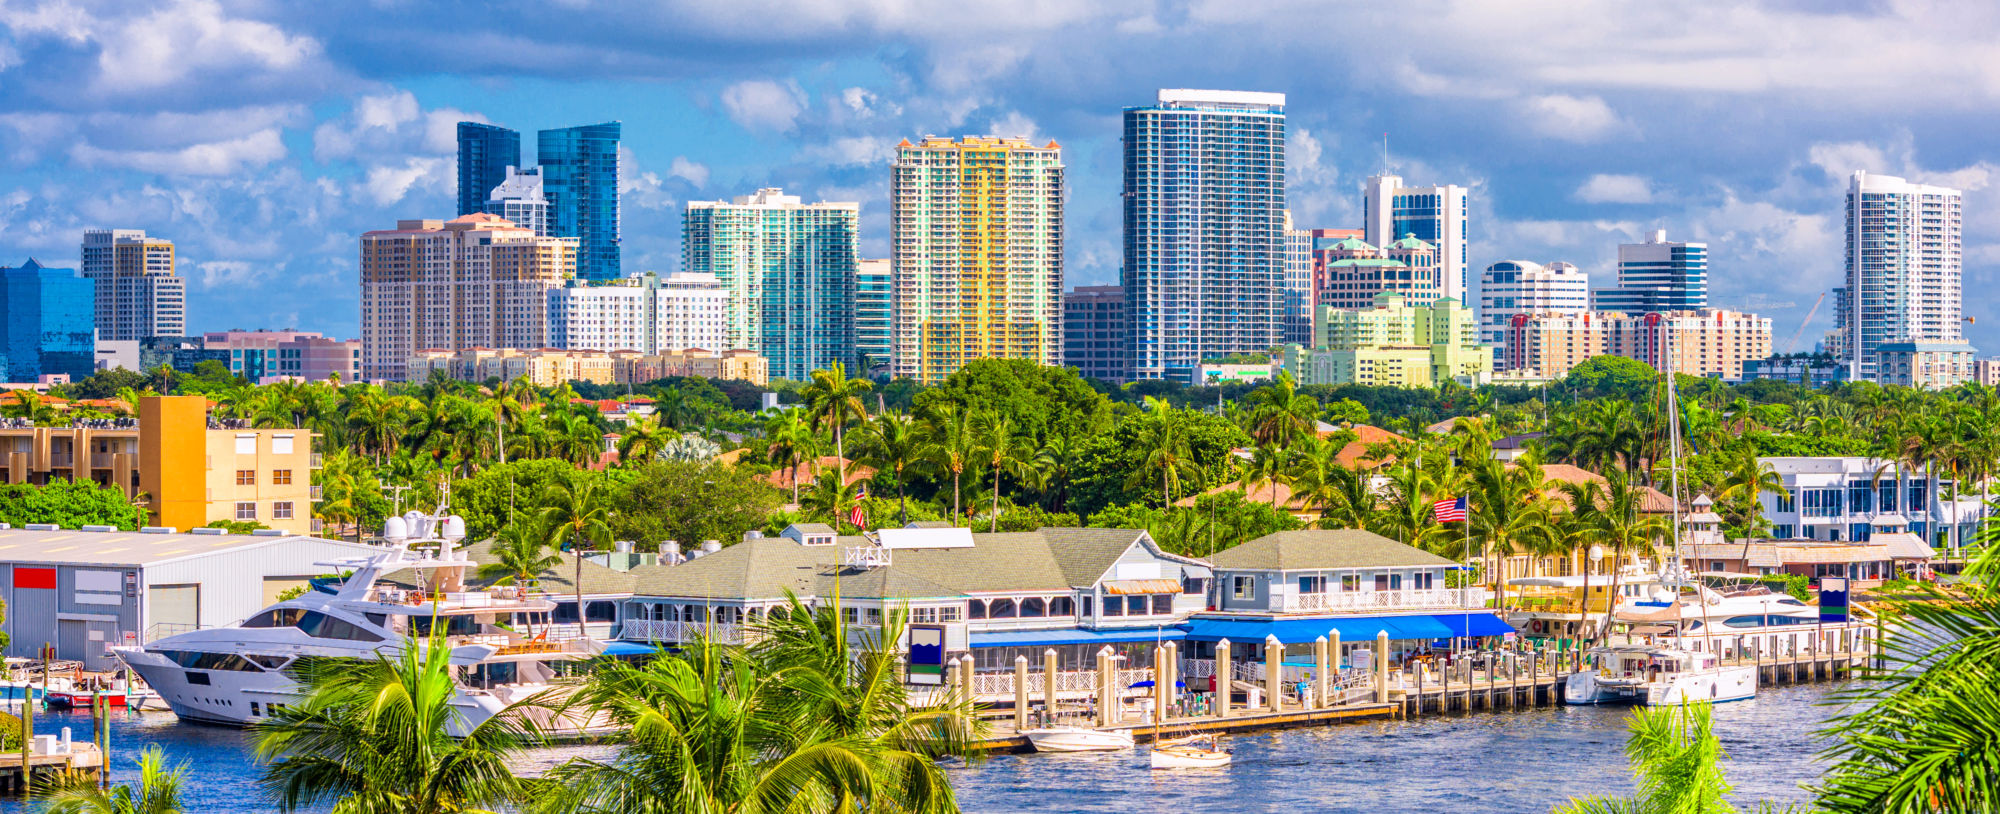 Home Security in Fort Lauderdale, Florida